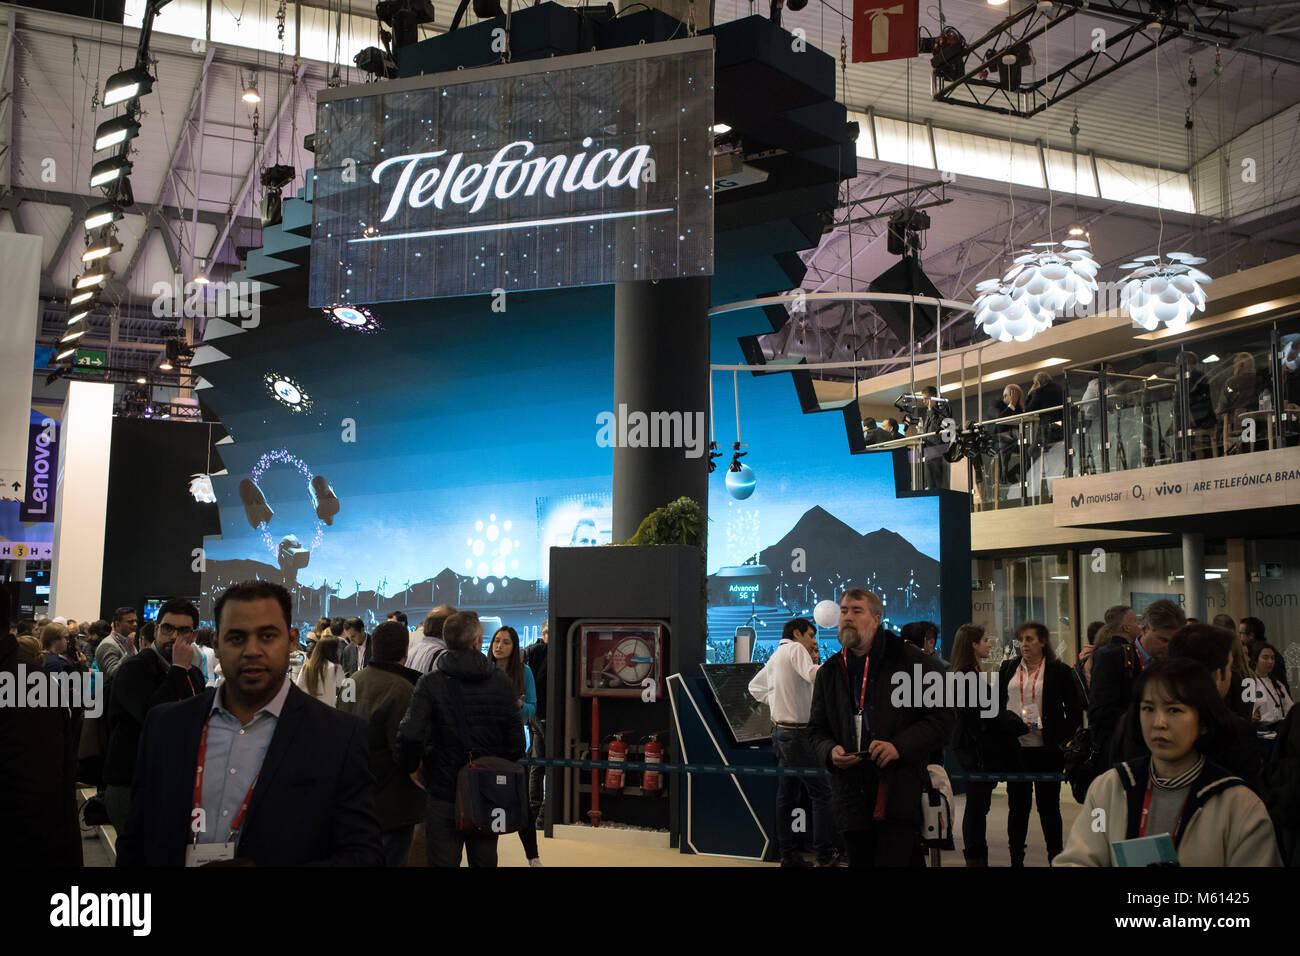 Barcelona, Catalonia, Spain. 27th Feb, 2018. TELEFONICA pavilion at the annual Mobile World Congress 2018, world's - Stock Image